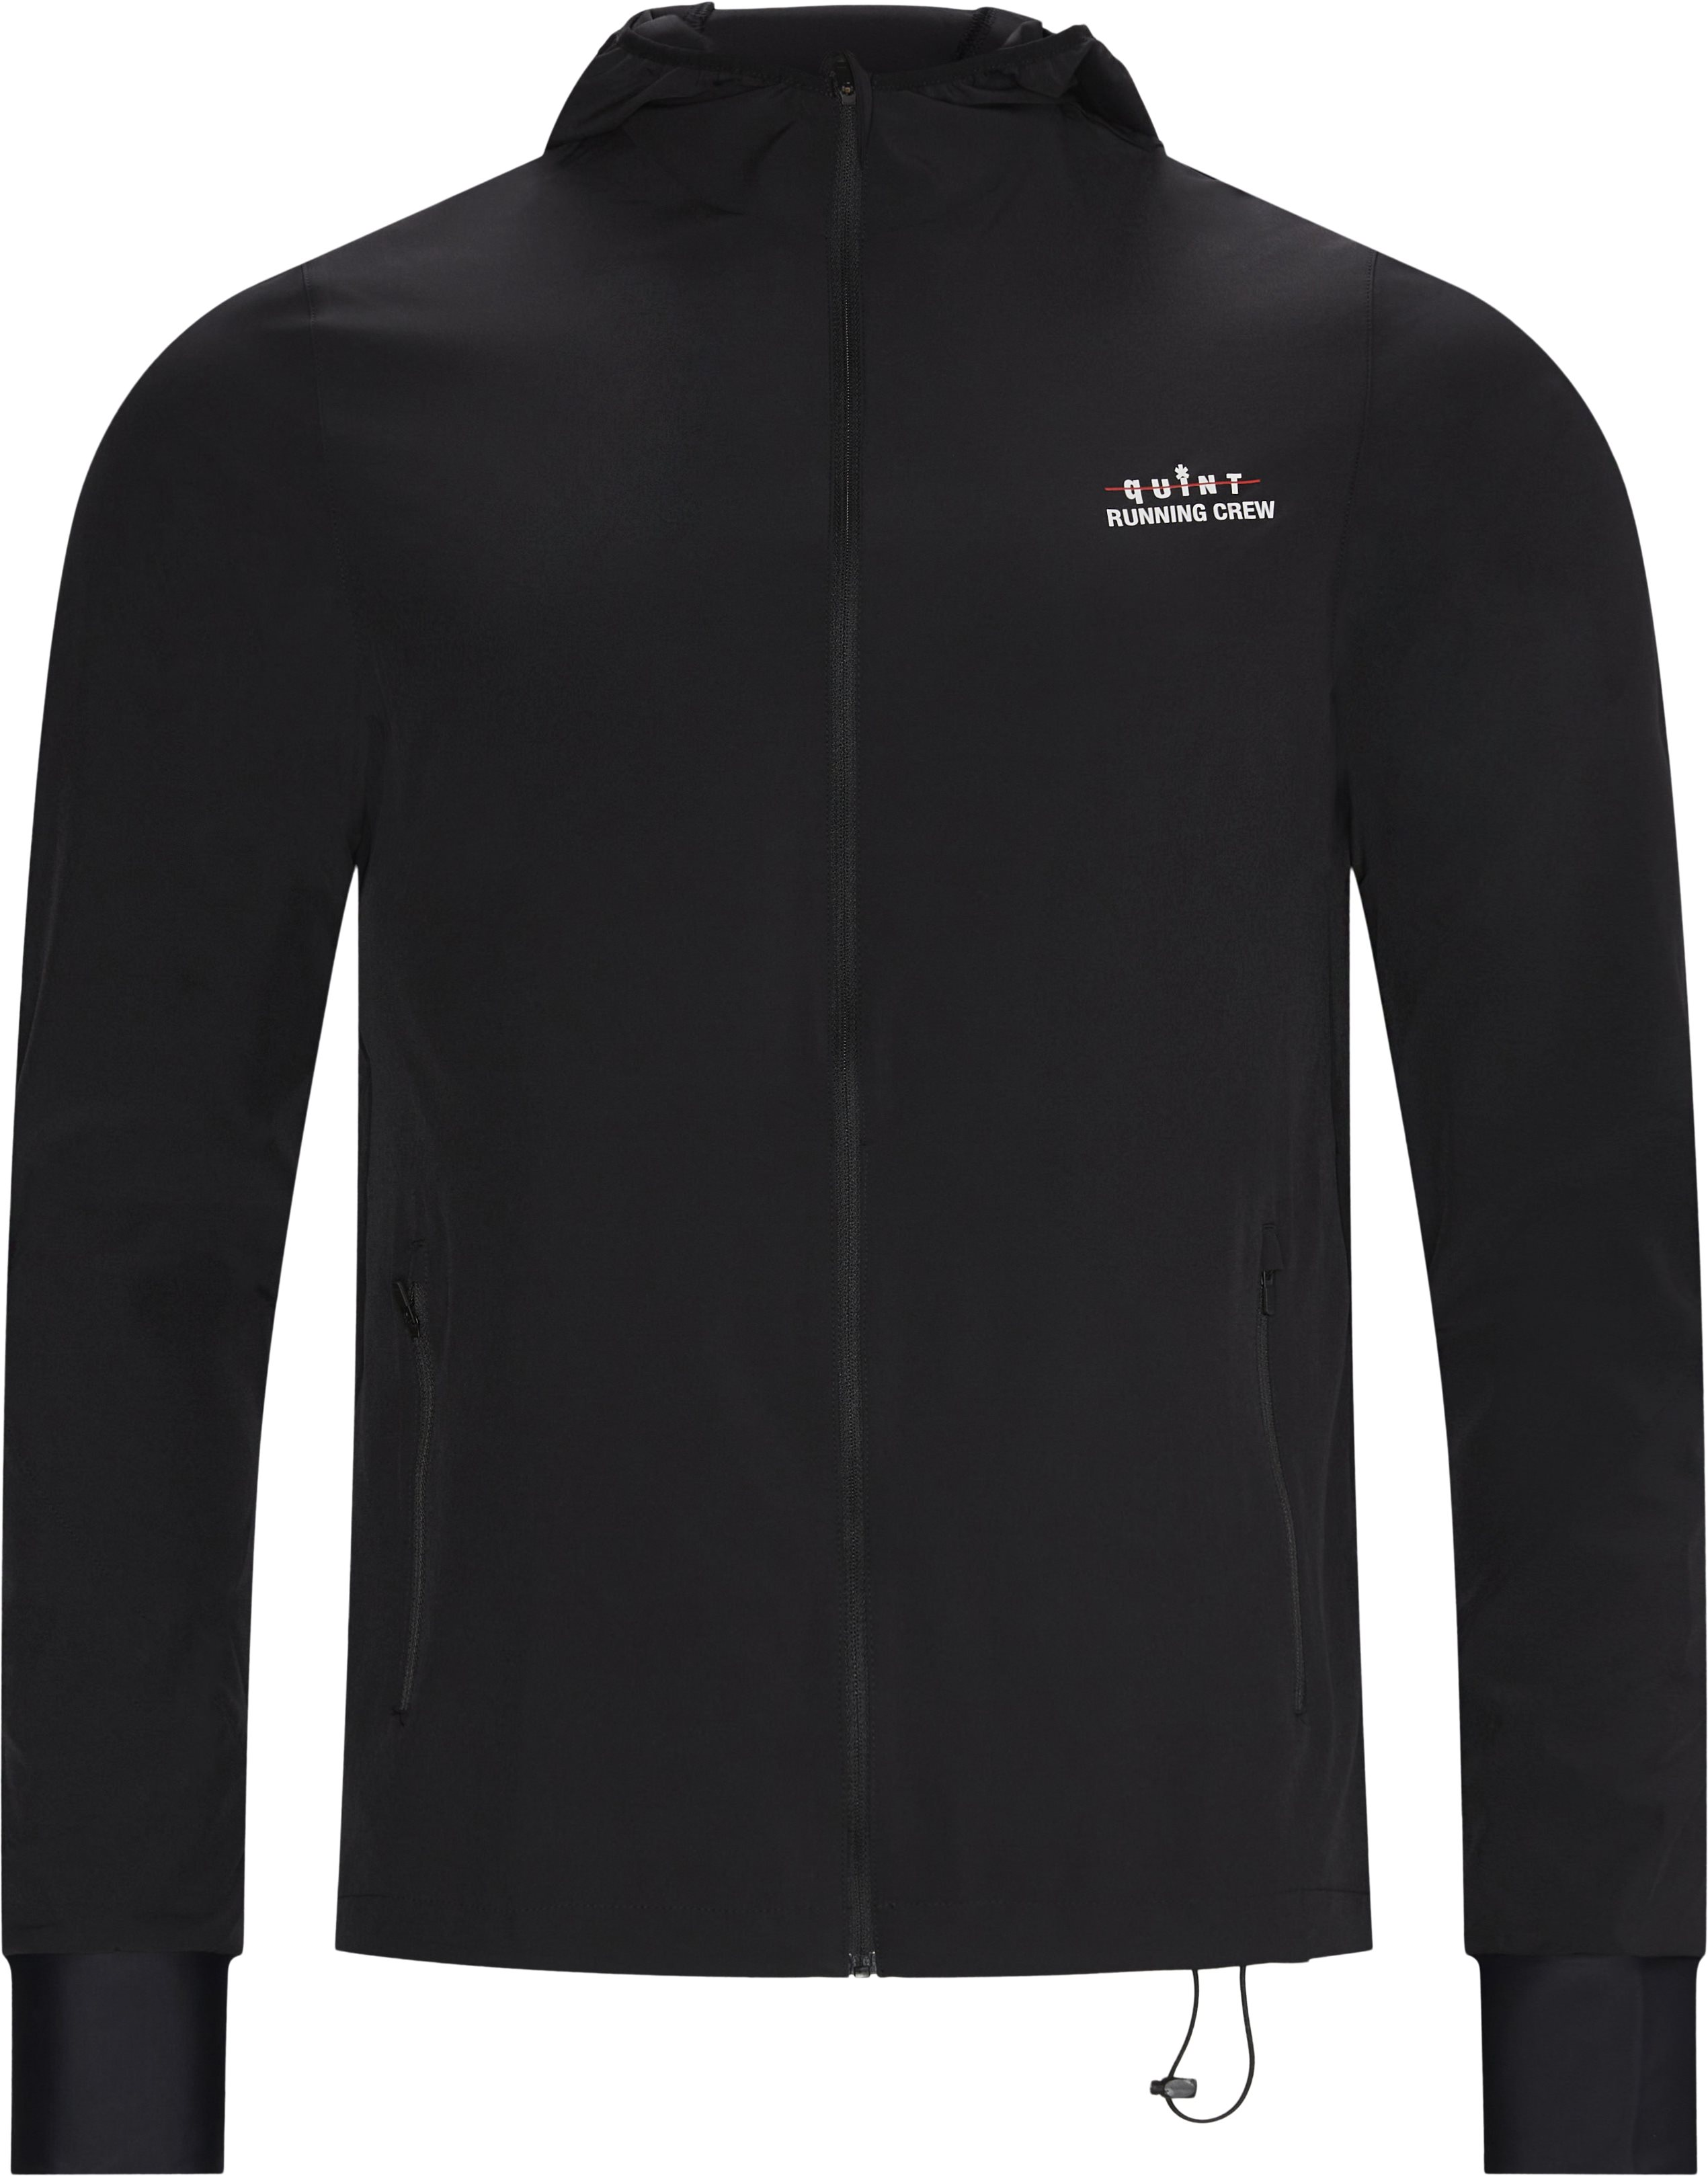 Quint Running Crew Jett Jacket - Jakker - Regular - Sort